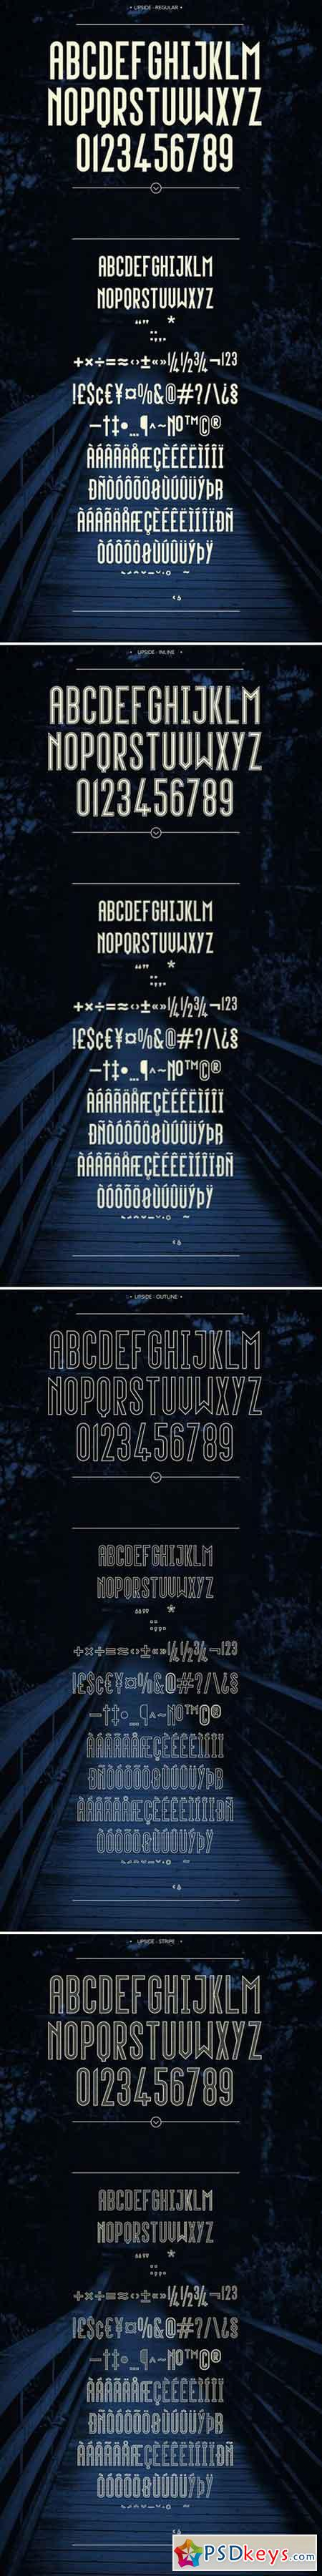 Upside - Complete Family (4 fonts) 1647981